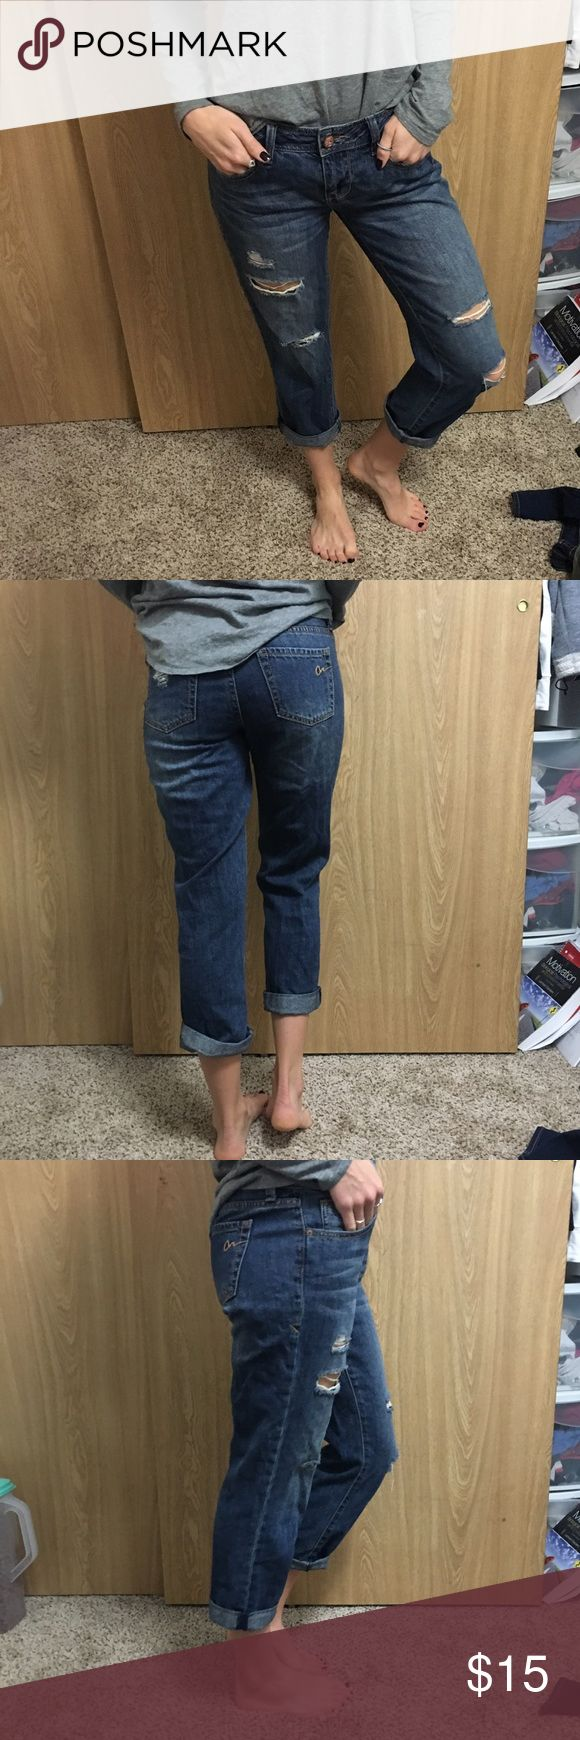 Boyfriend Ripped Jeans American Rag boyfriend jeans, only worn a couple times! Great condition. Super comfortable and cute with any casual shirt and boots! Size 3. American Rag Jeans Boyfriend